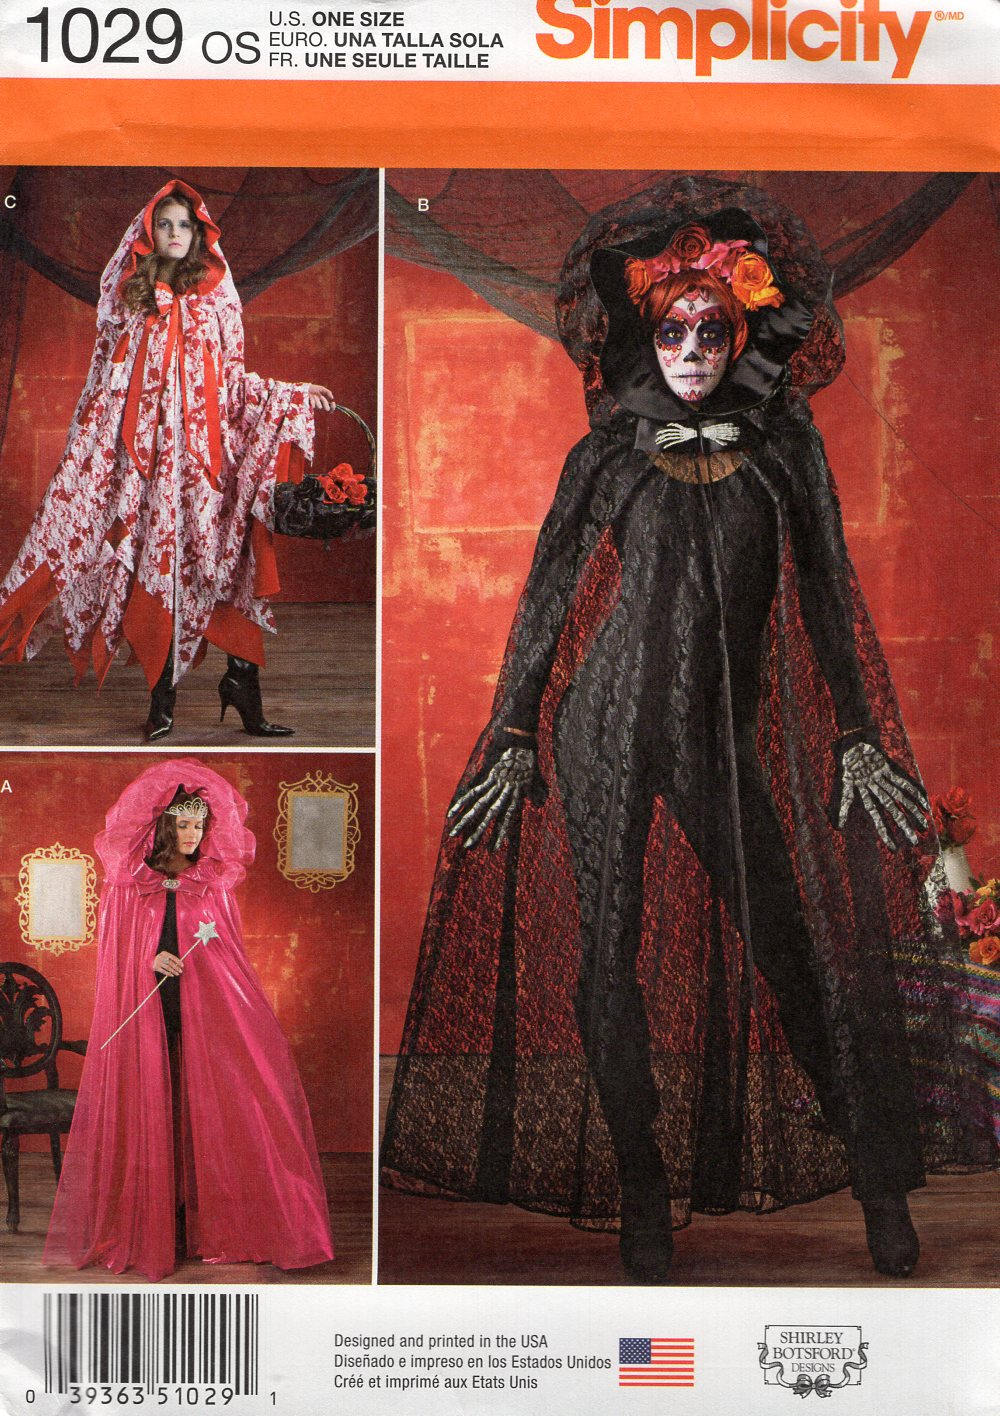 Simplicity 1029 free us ship sewing pattern adult costume cape simplicity 1029 free us ship sewing pattern adult costume cape cloak hood goth sheer catsuit cover up all sizes uncut new jeuxipadfo Image collections